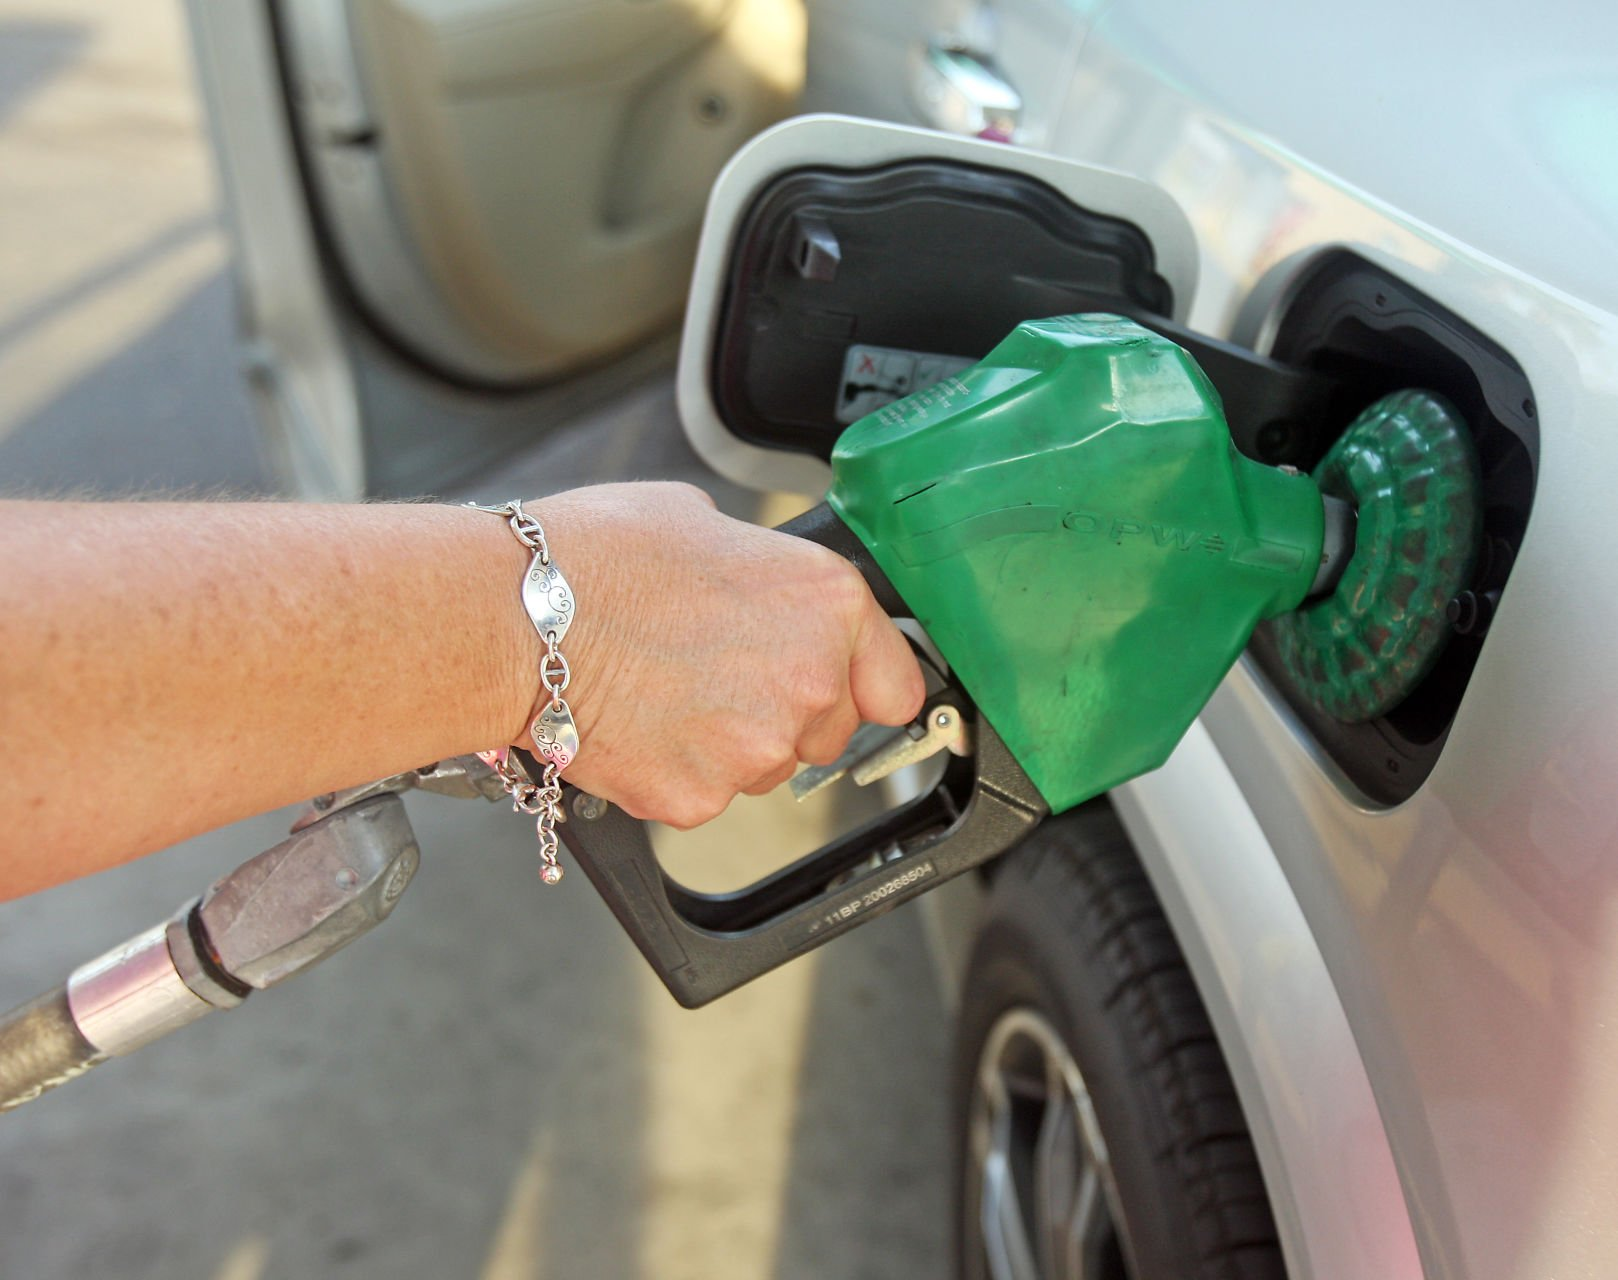 Gasoline prices expected to rise, summer fuel demand blamed